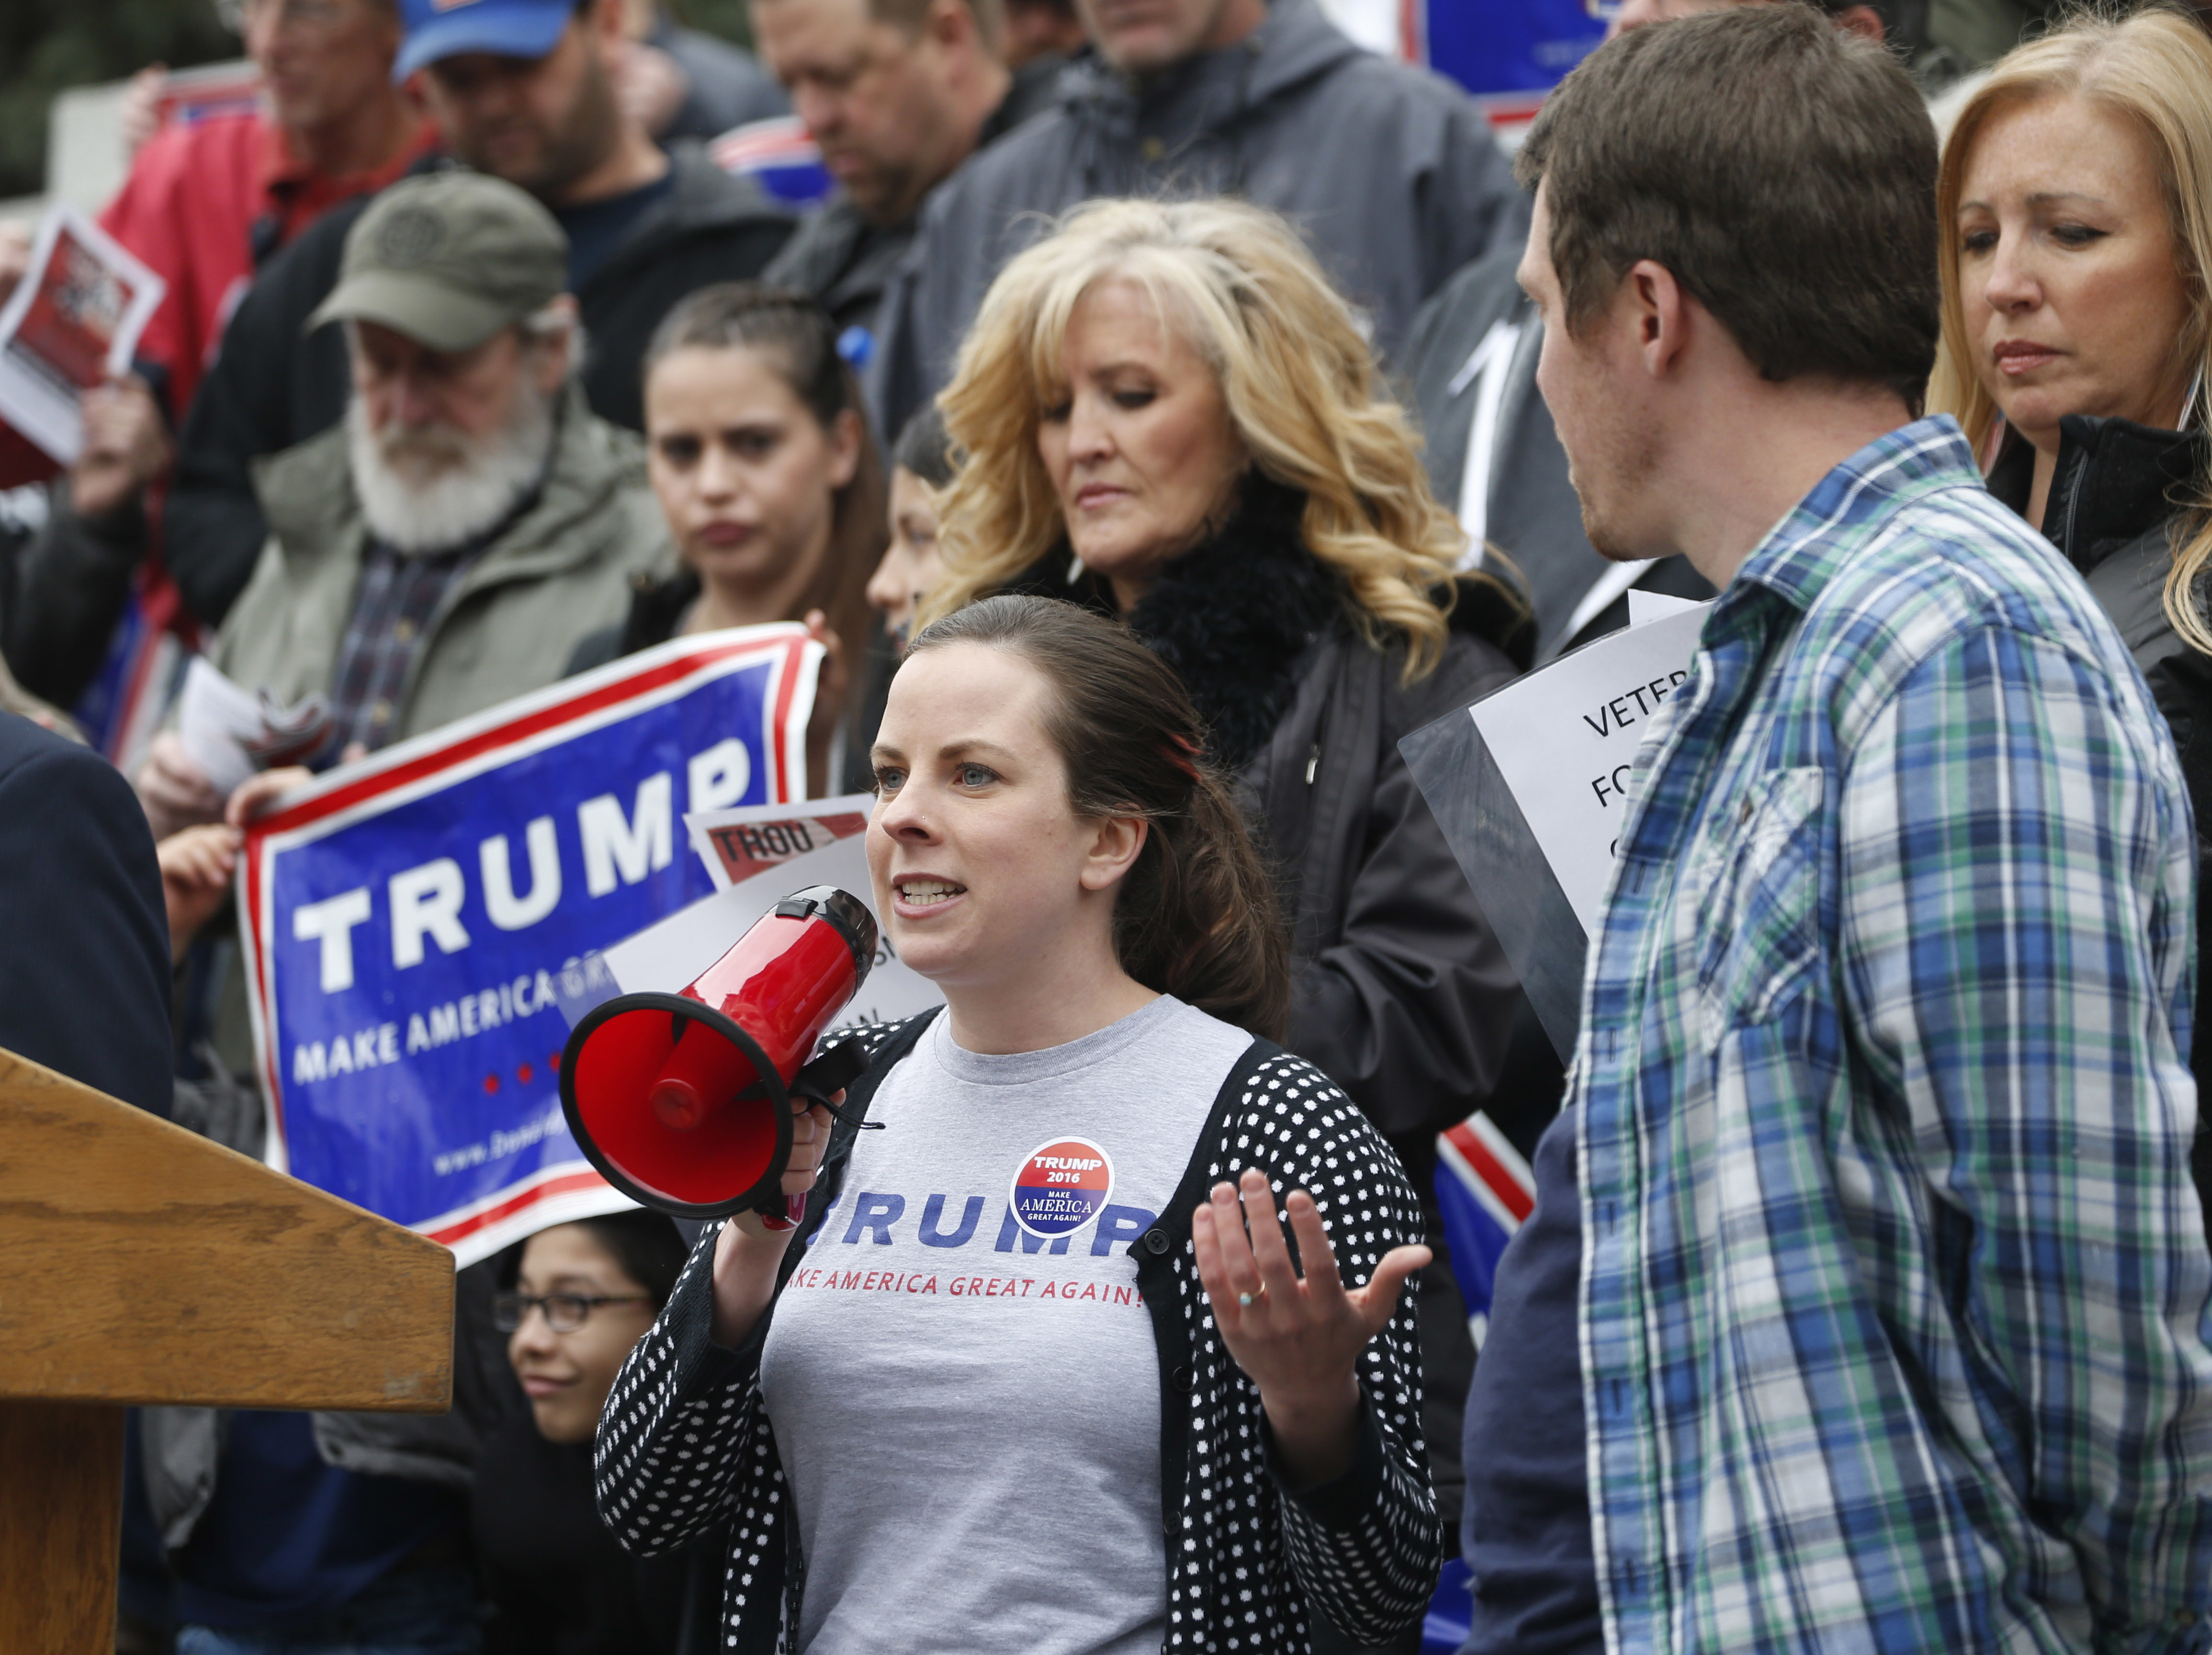 Photo: Trump rally at state Capitol (AP Photo)